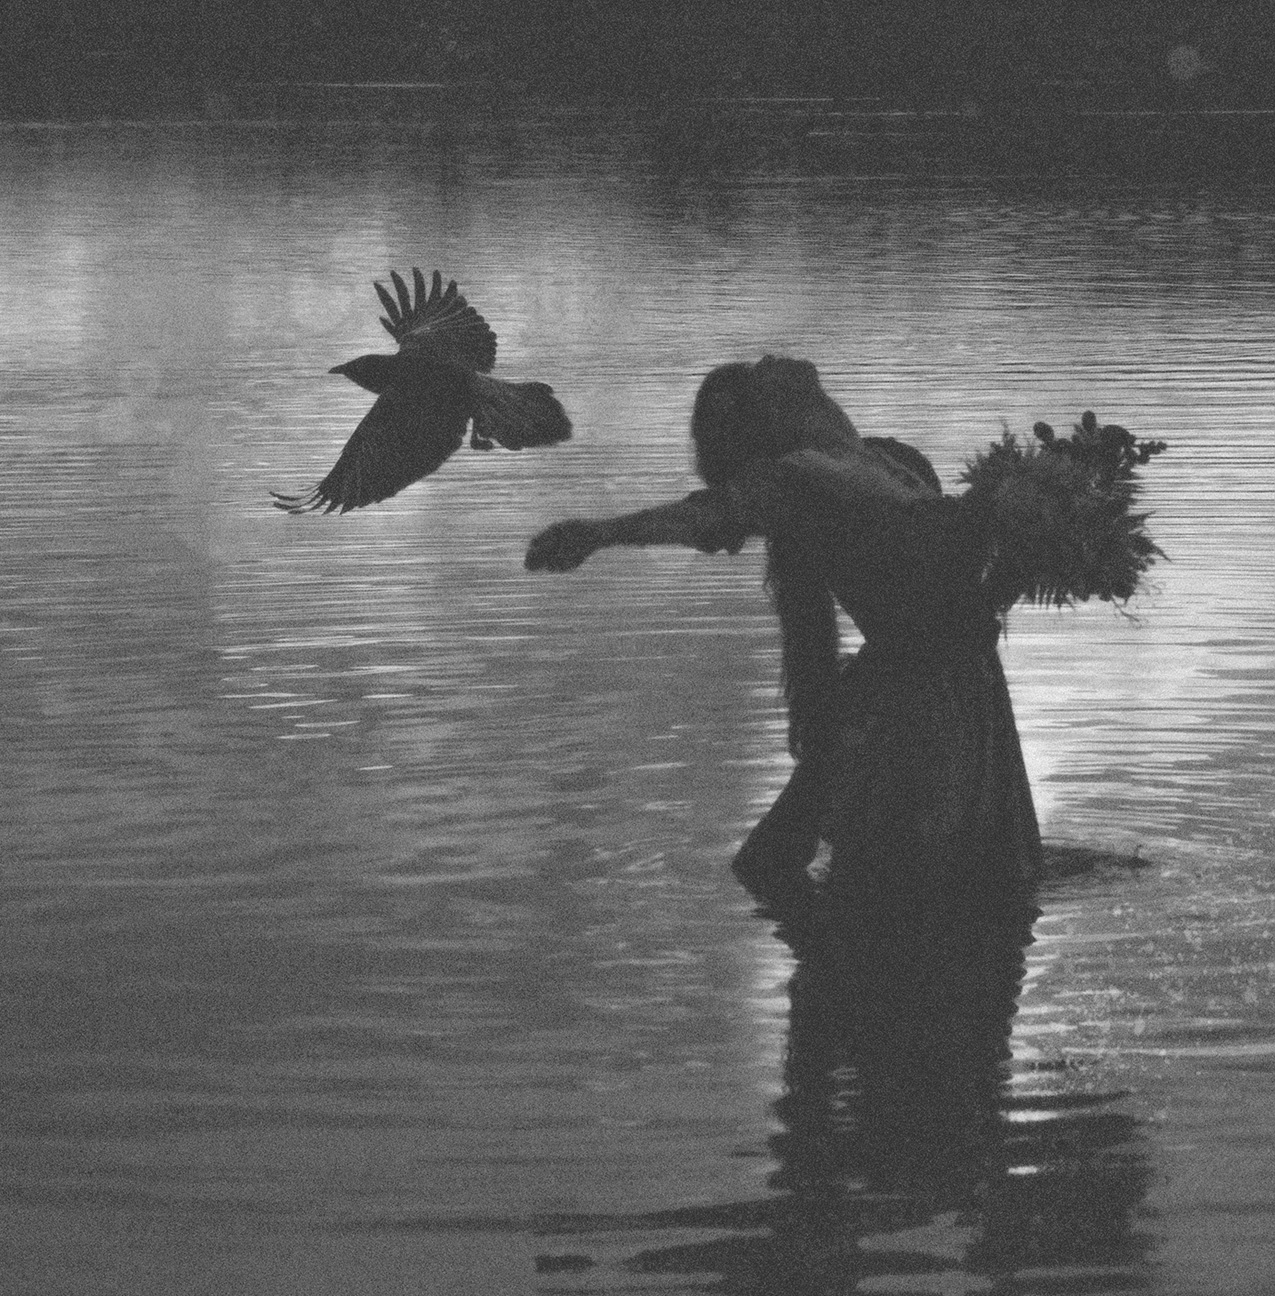 grainy, low-contrast photo of a woman wearing a dress and holding a bouquet standing in a lake; a large bird flies very close by